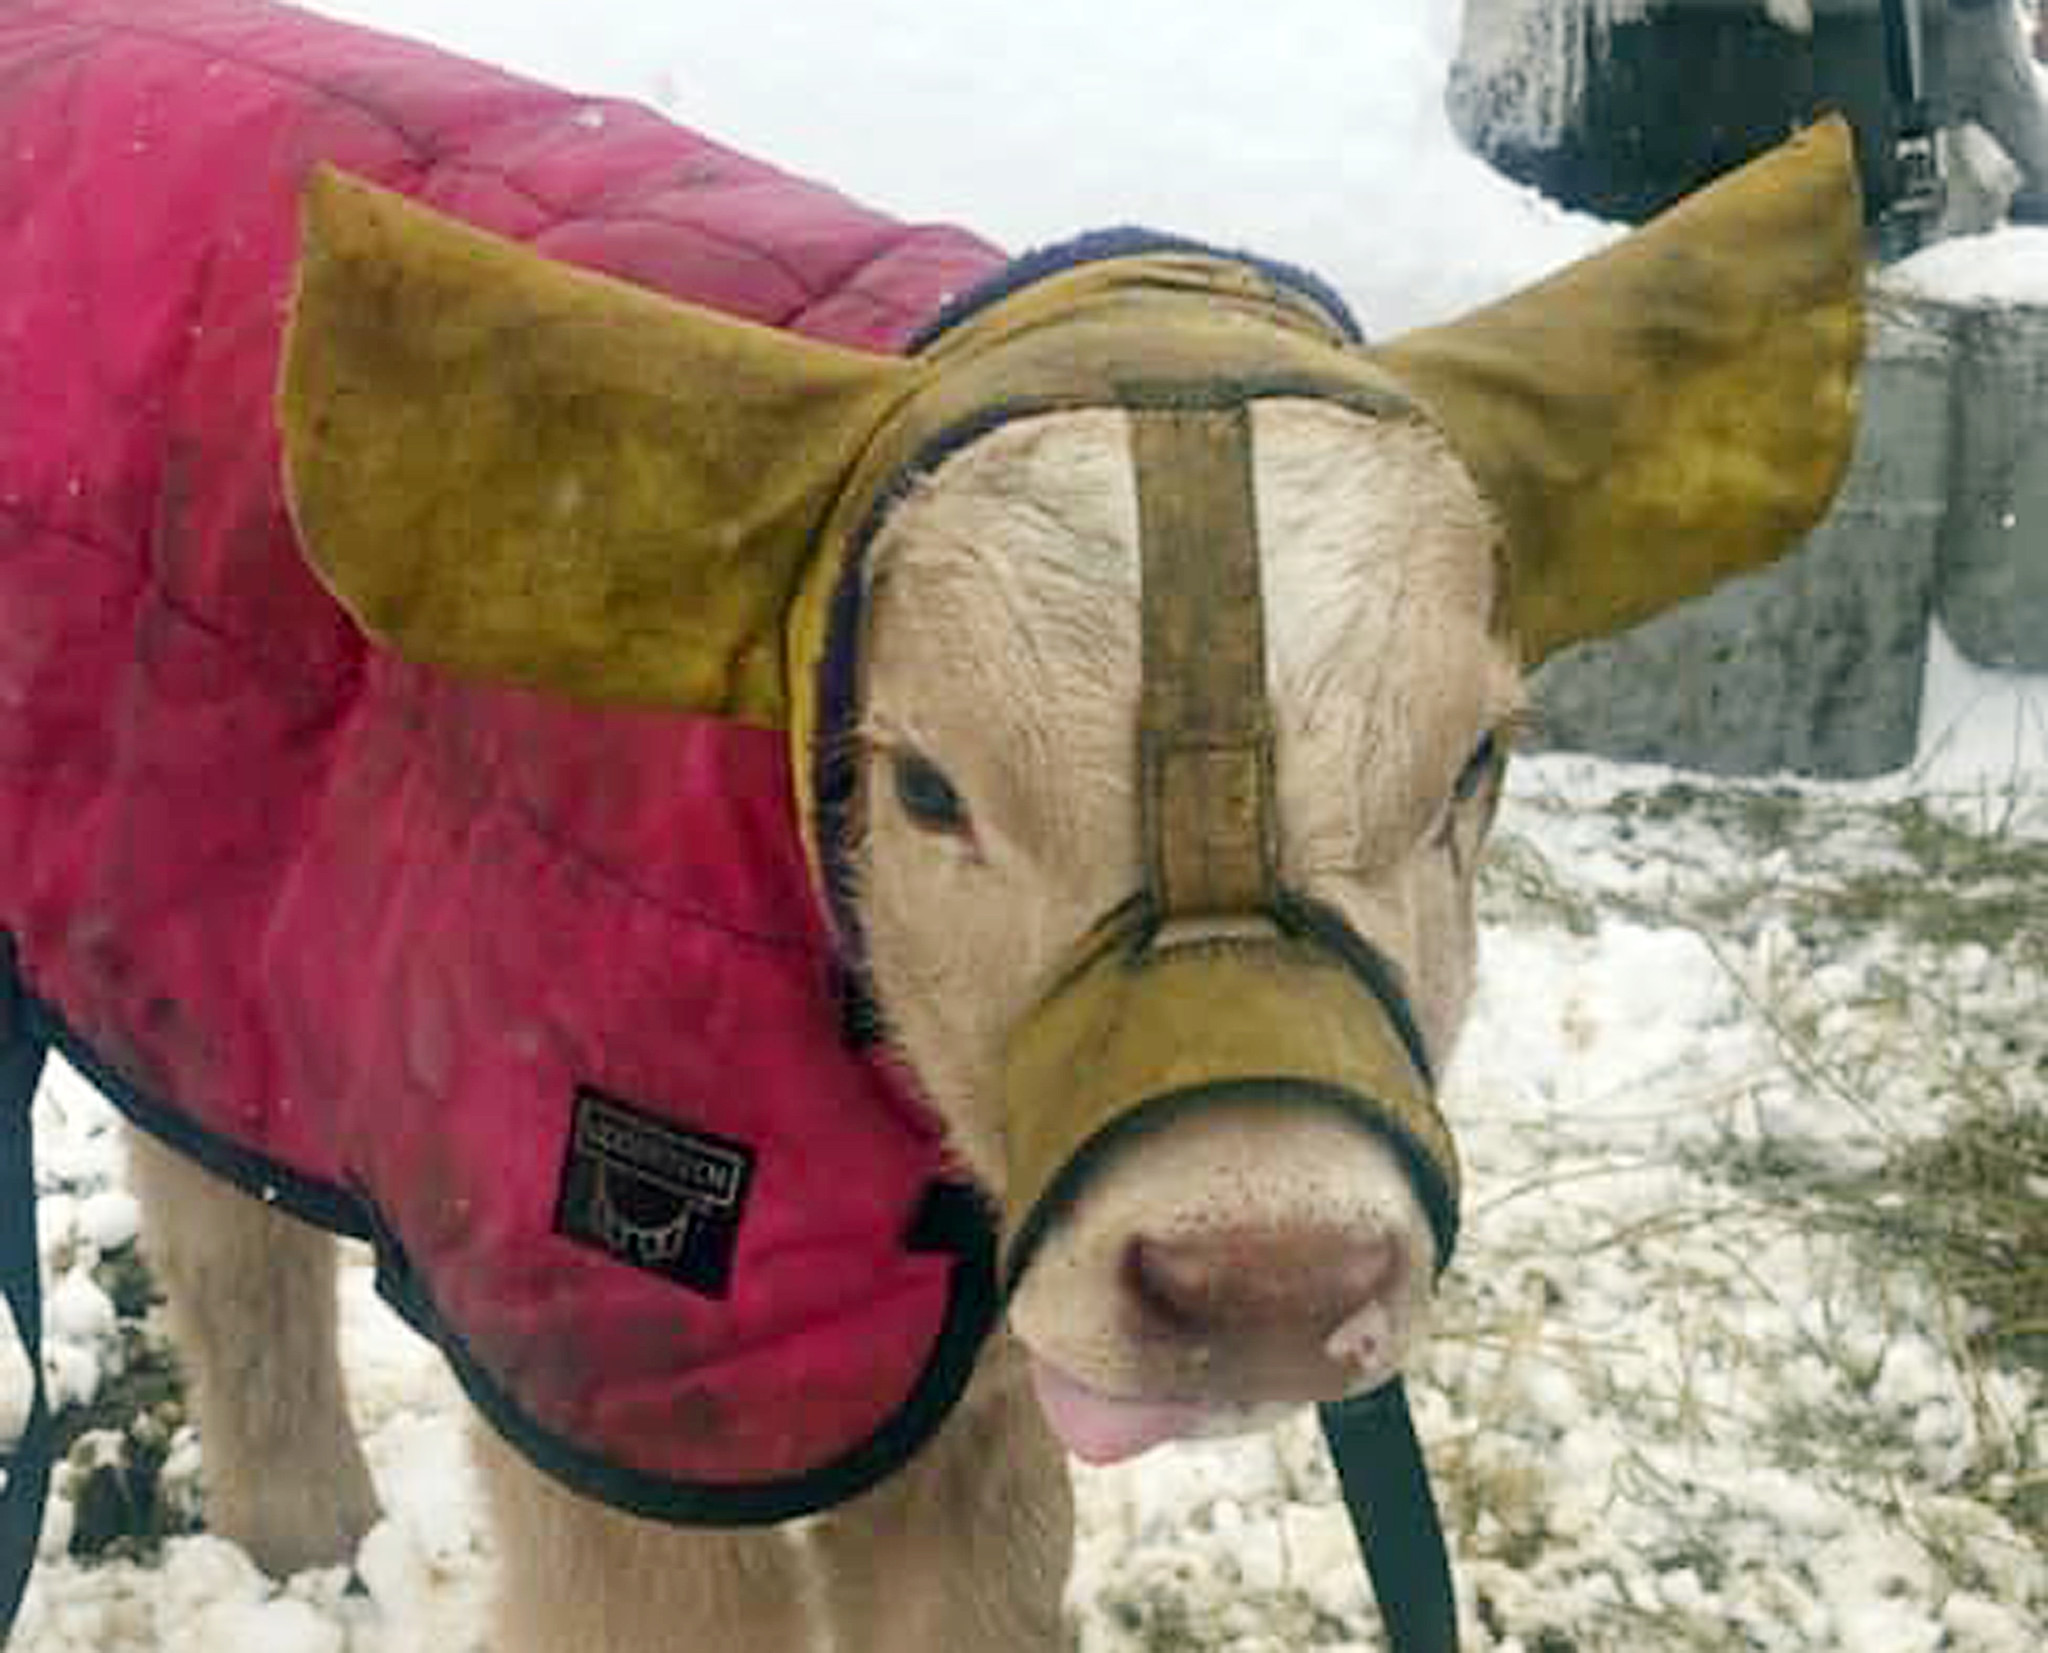 These adorable earmuffs for cows are a big hit